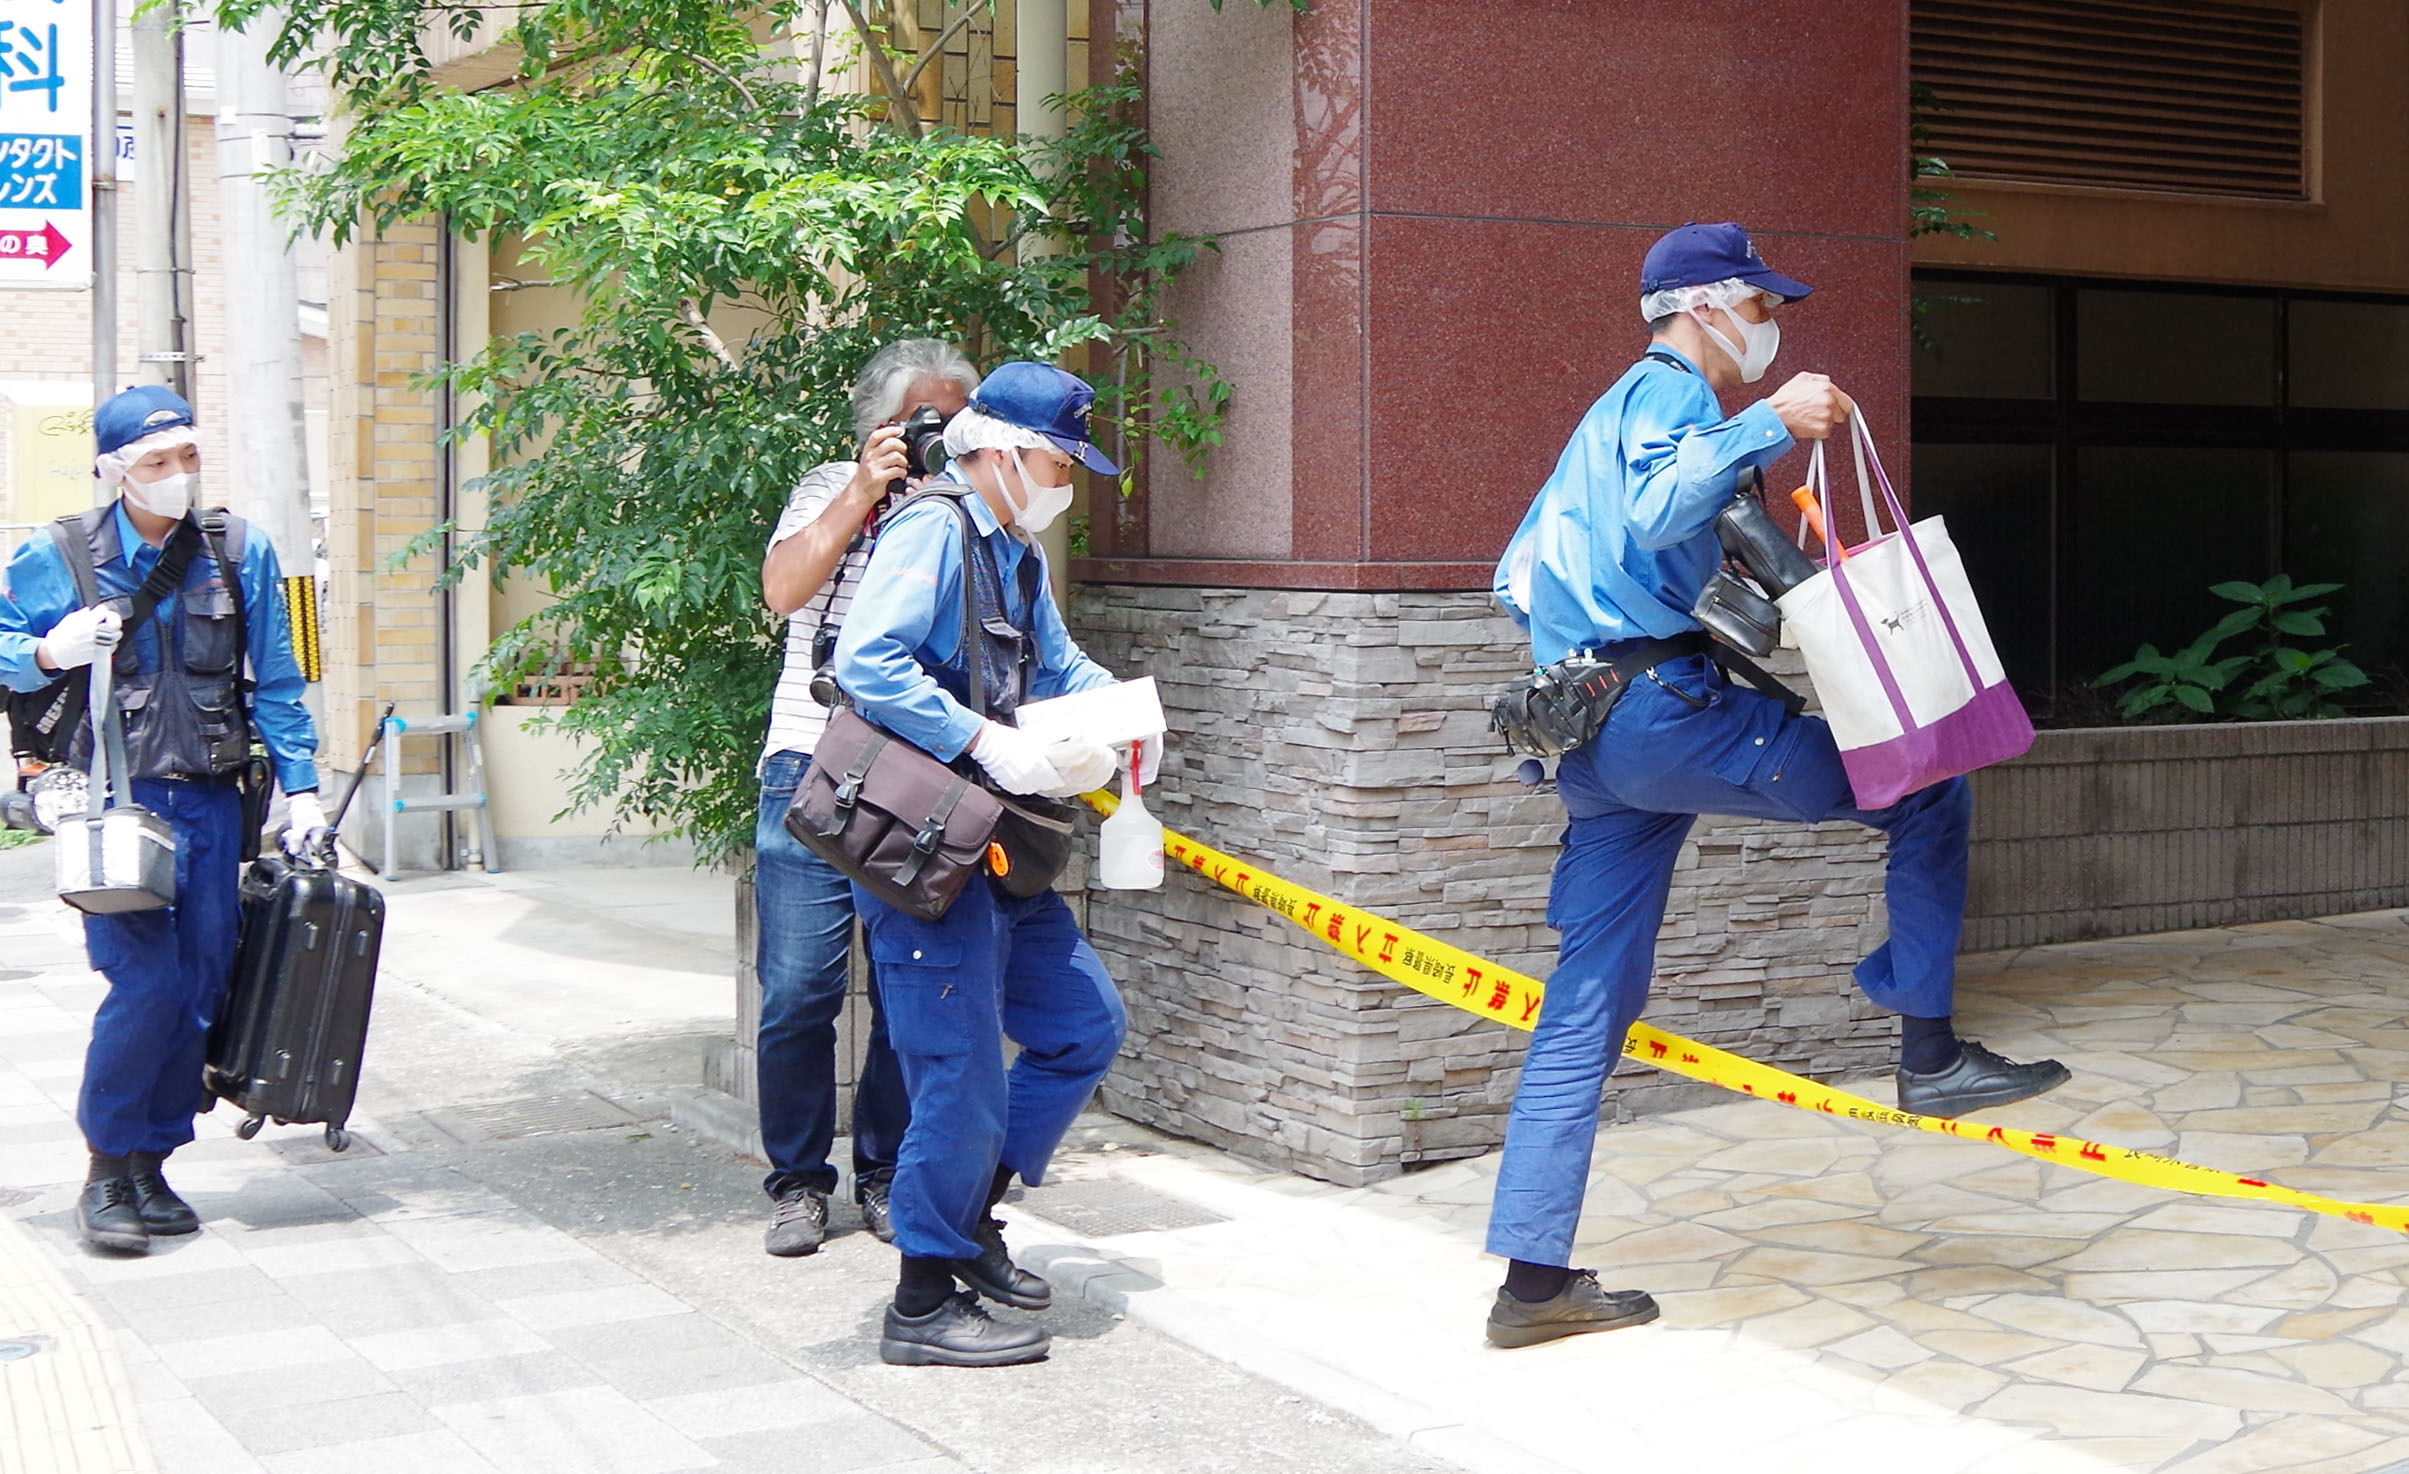 Japanese police officers enter an apartment building in Sasebo, in Nagasaki prefecture, Japan, on July 27, 2014, to investigate the site where Aiwa Matsuo, a 15-year-old high school girl, was murdered by her classmate